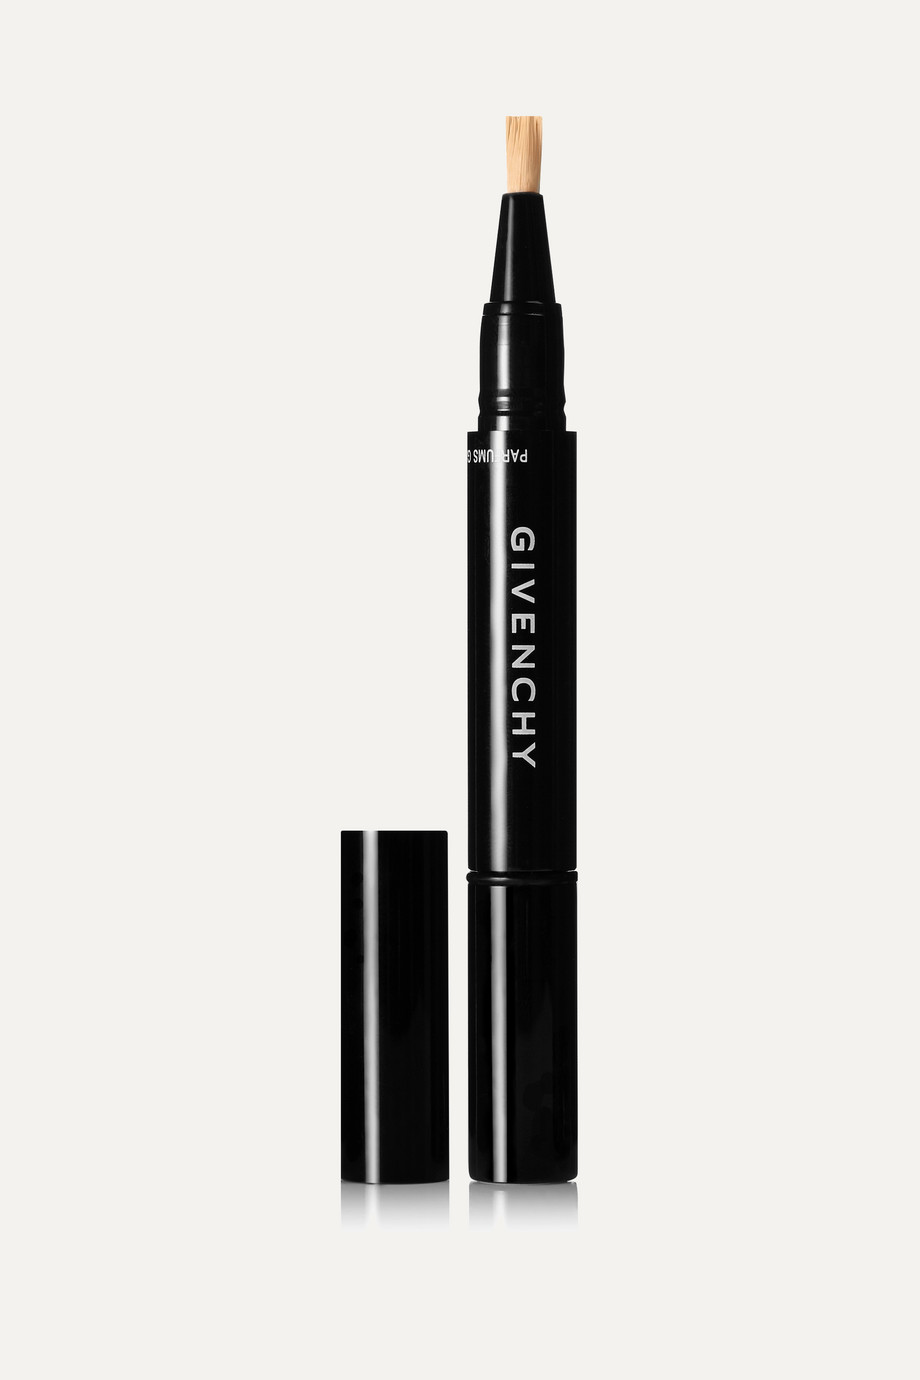 Givenchy Beauty Mister Instant Corrective Pen - Beige 120